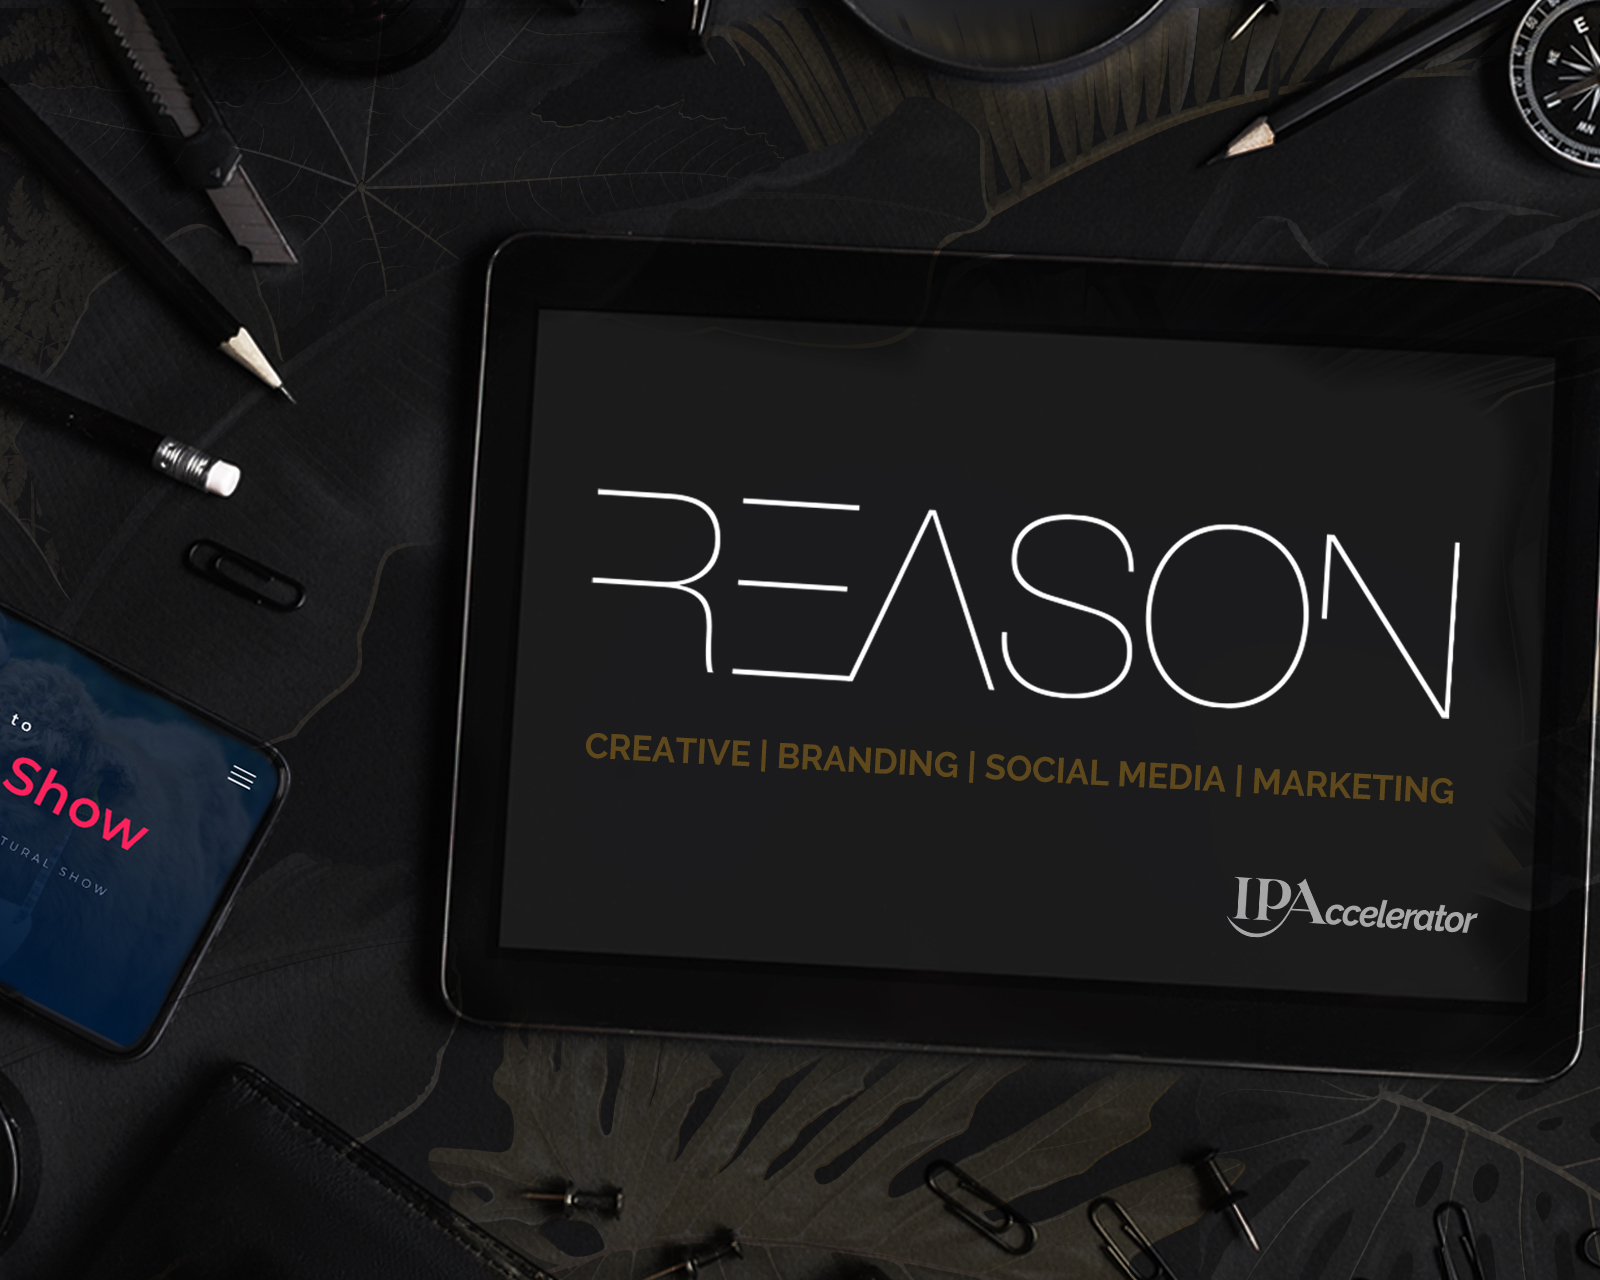 Reason Agency Supporting New Deer Show